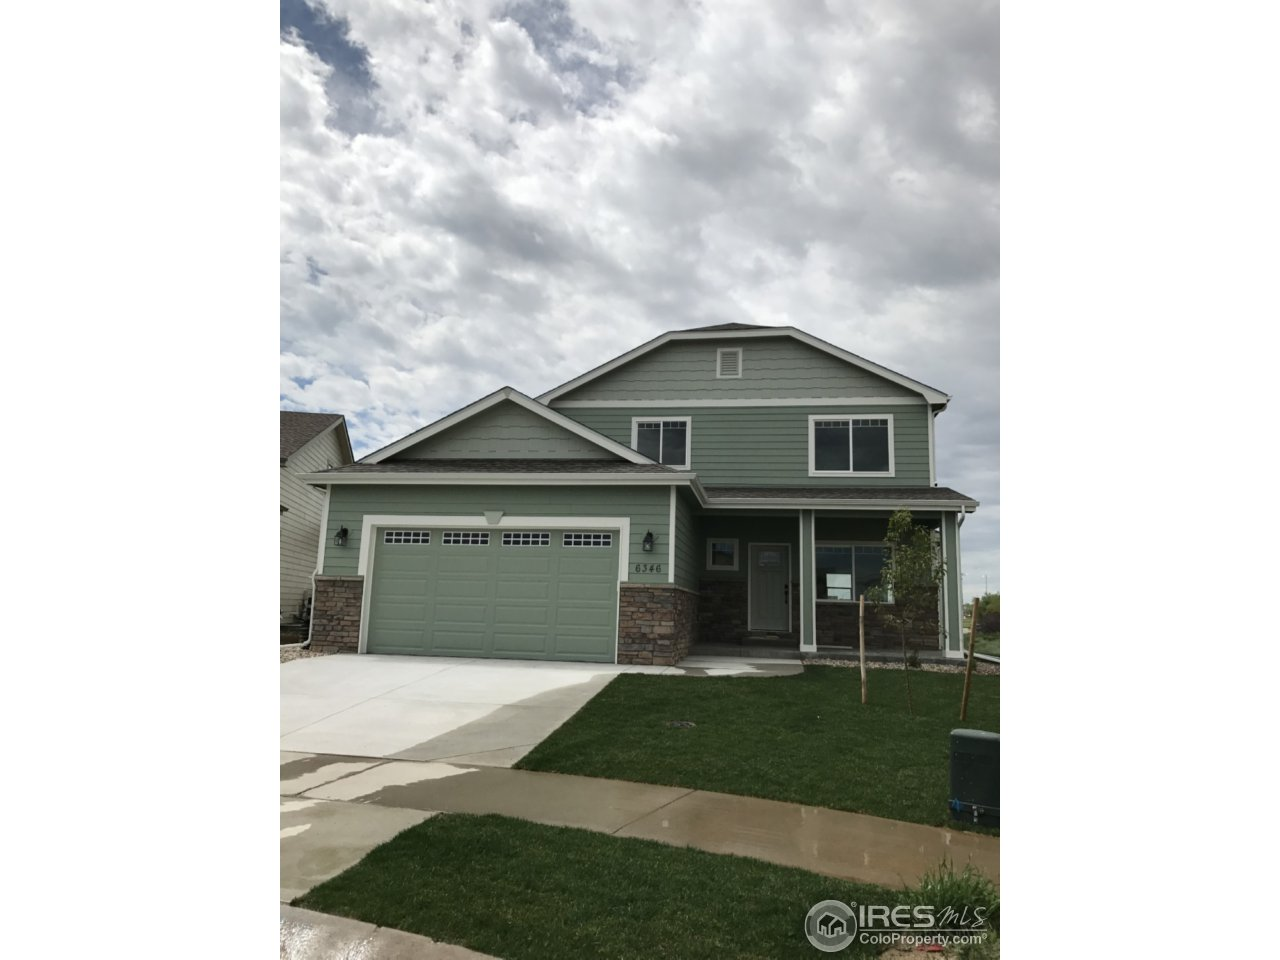 6346 W 13th St Rd, Greeley, CO 80634